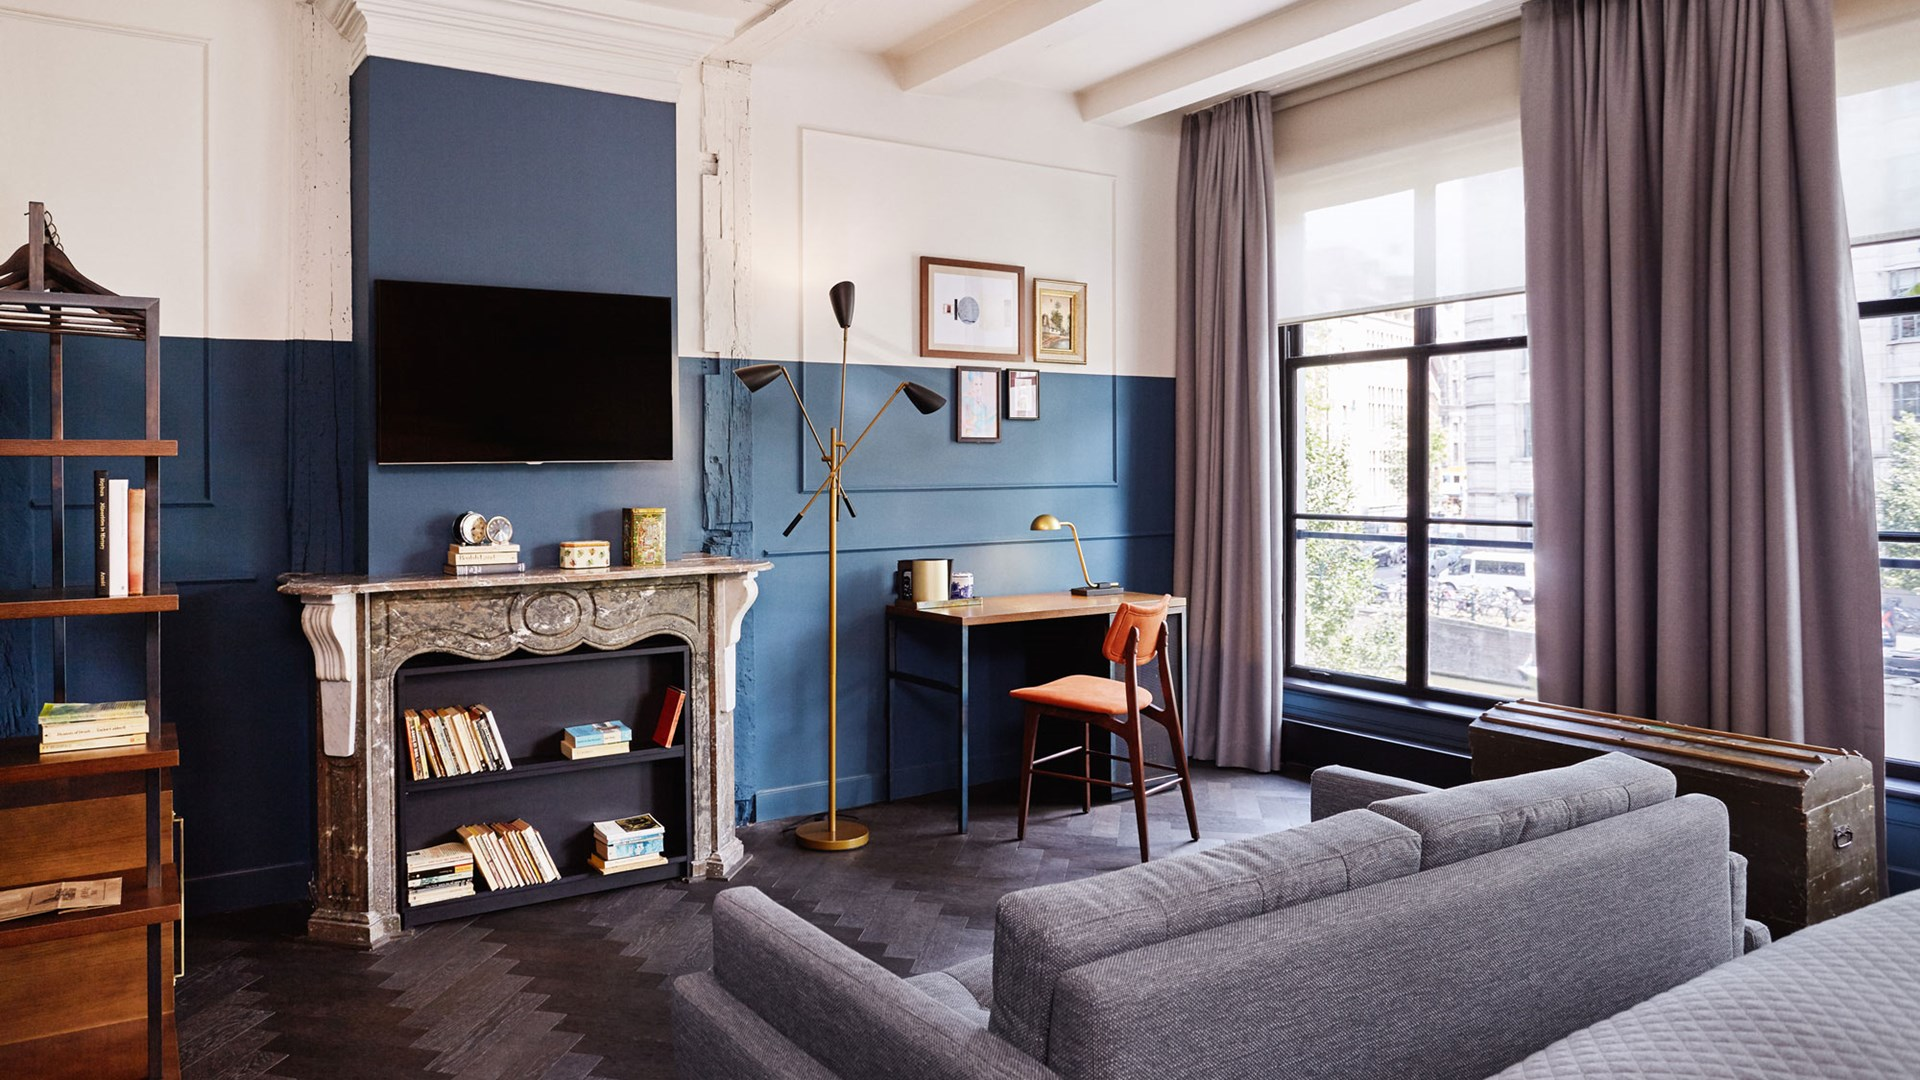 The Hoxton - Chic open house hotels